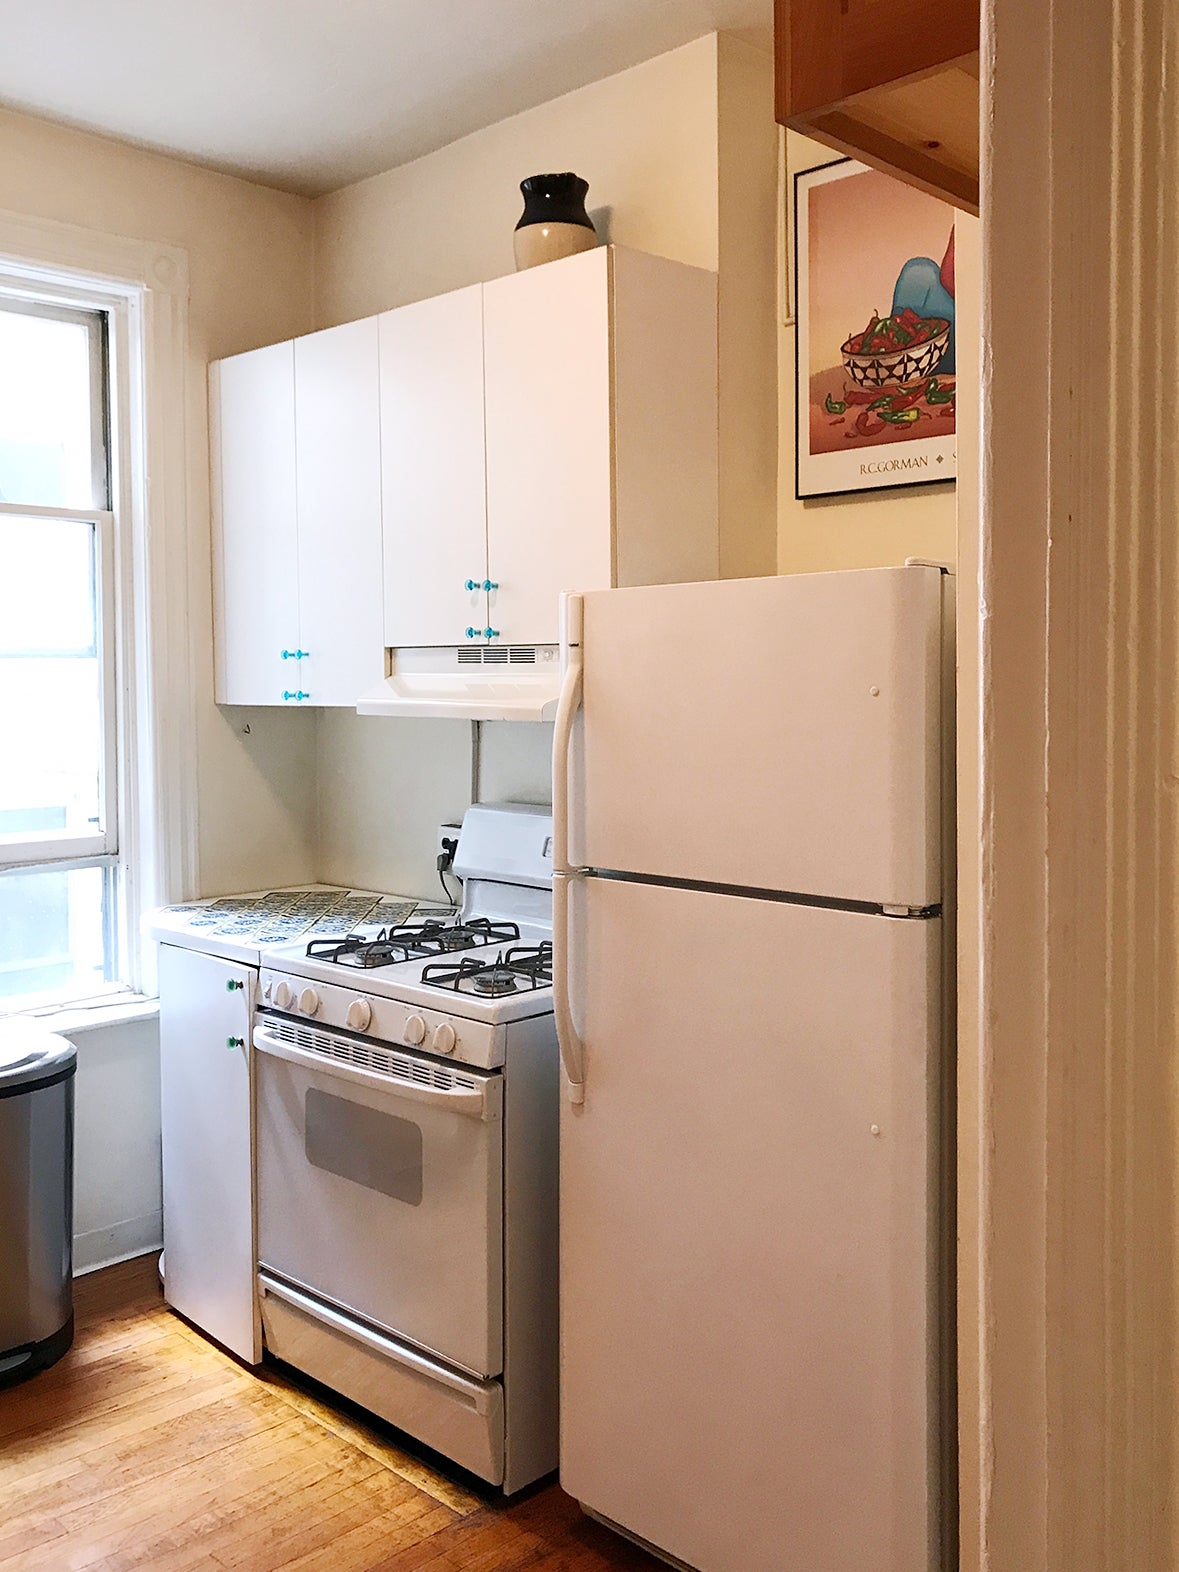 small kitchen with white fridge, oven, and cabinets